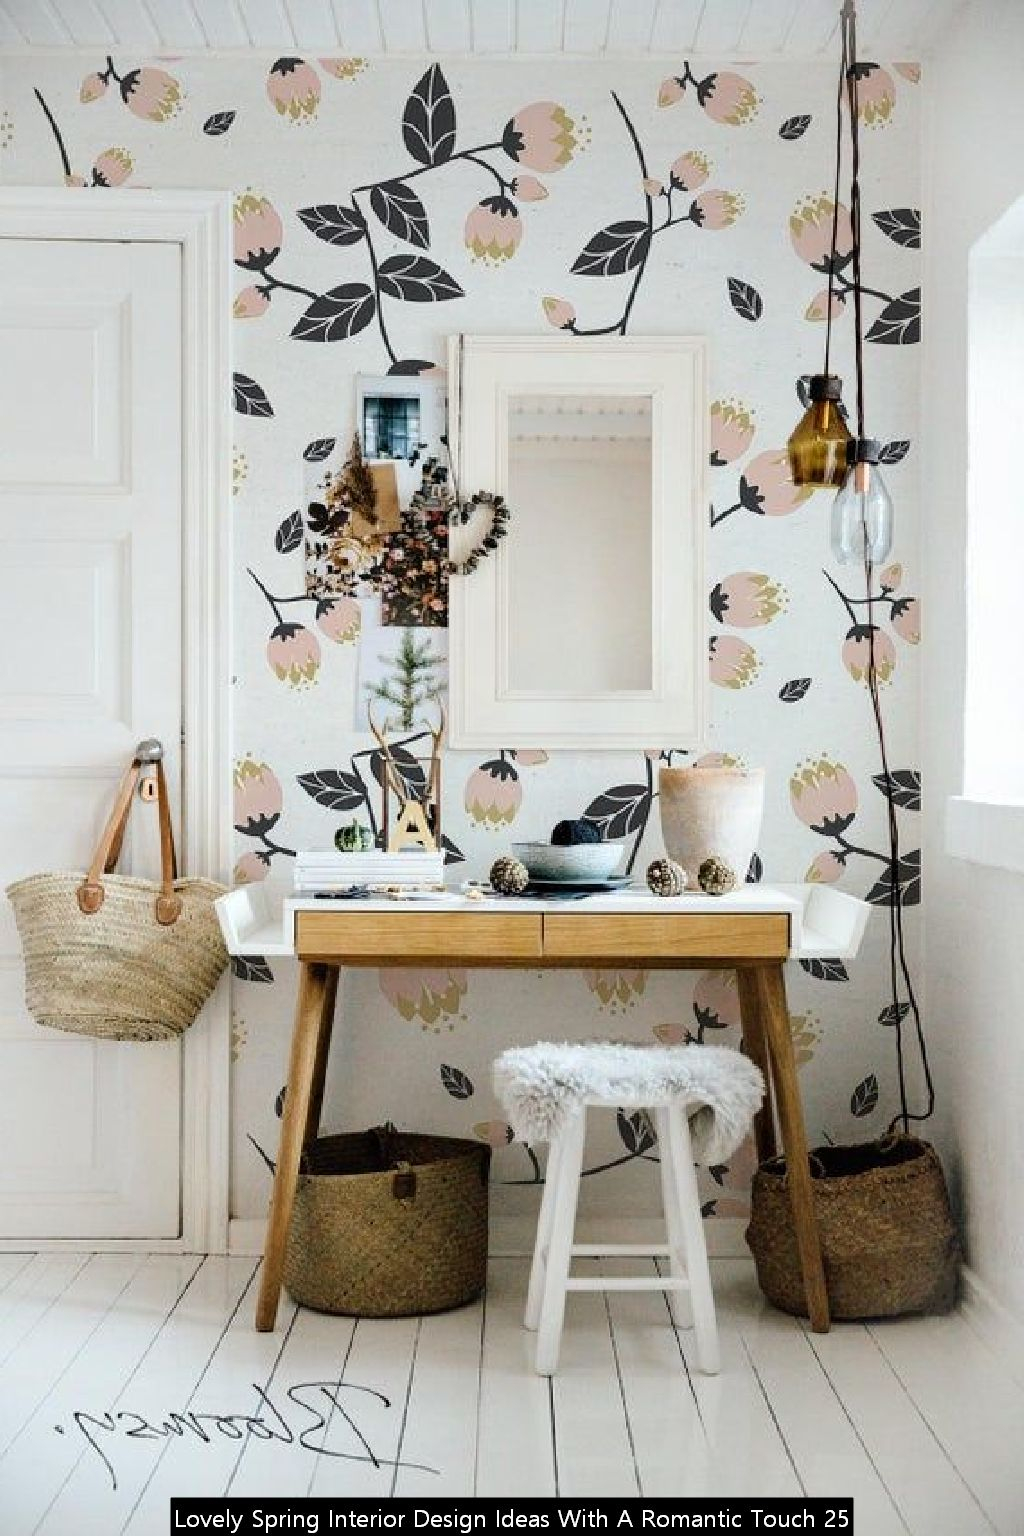 Lovely Spring Interior Design Ideas With A Romantic Touch 25